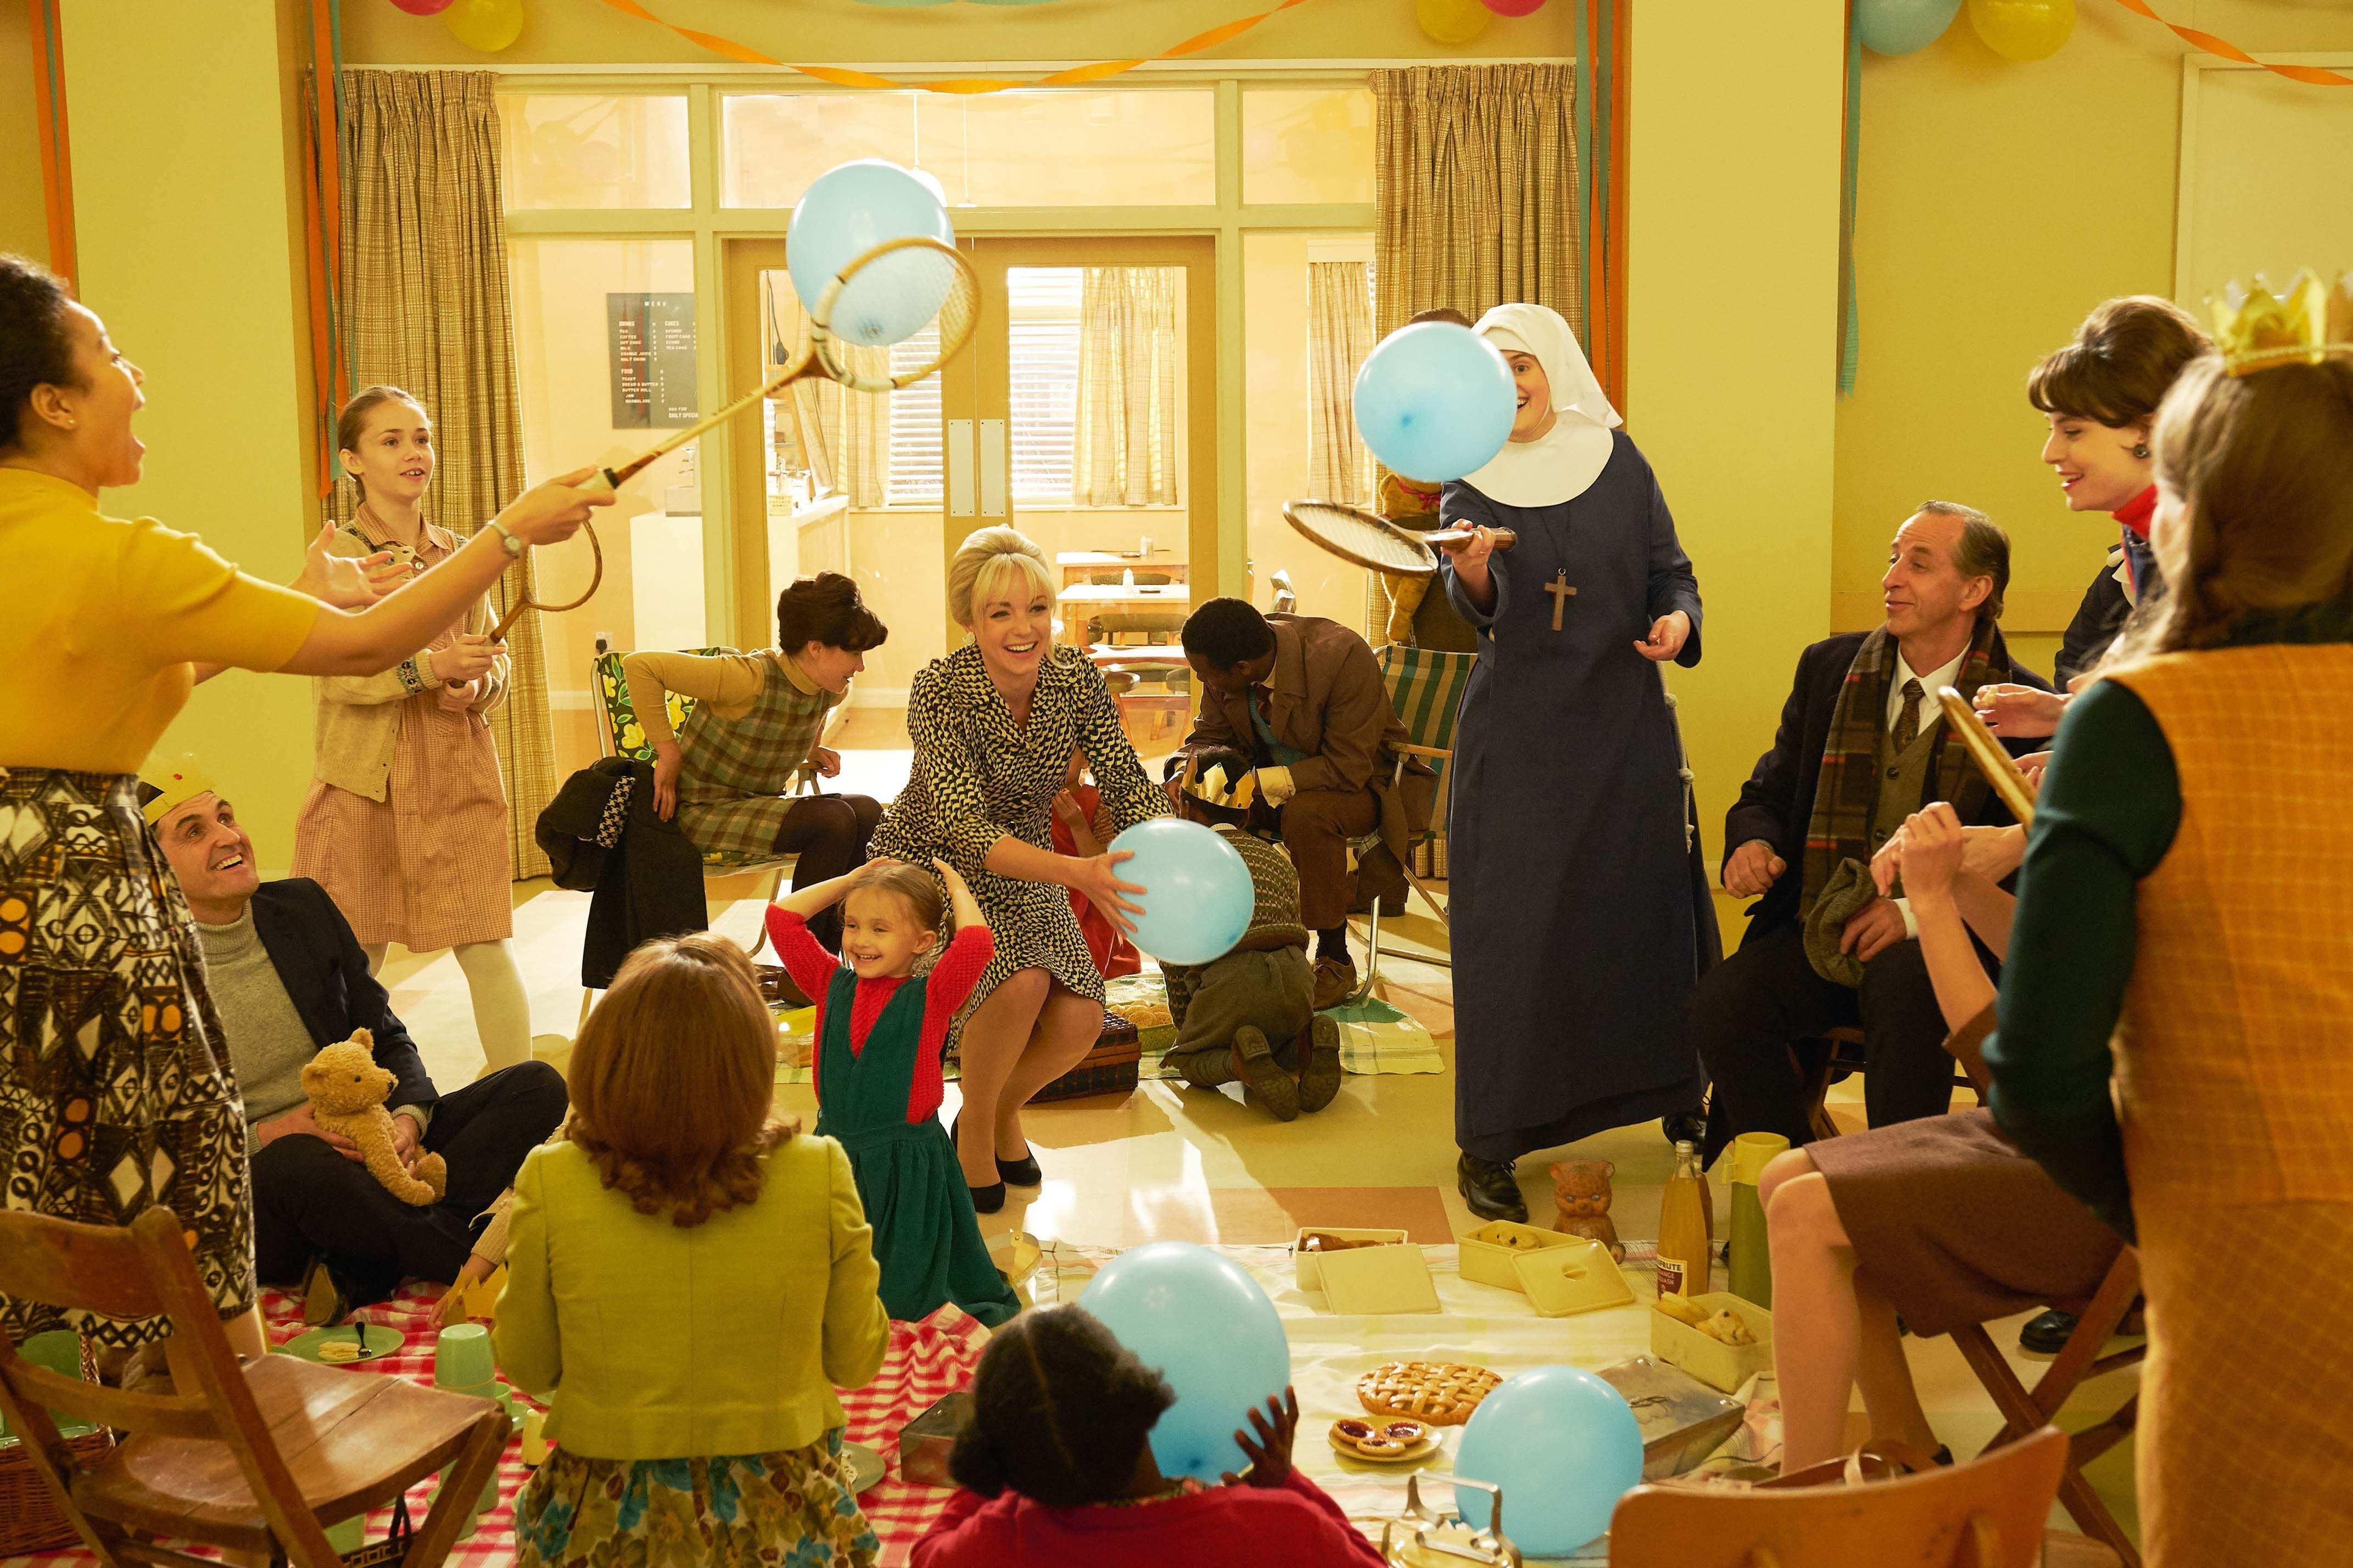 Call The Midwife Christmas 2019.Call The Midwife Season 9 Cast Plot Air Date And Spoilers